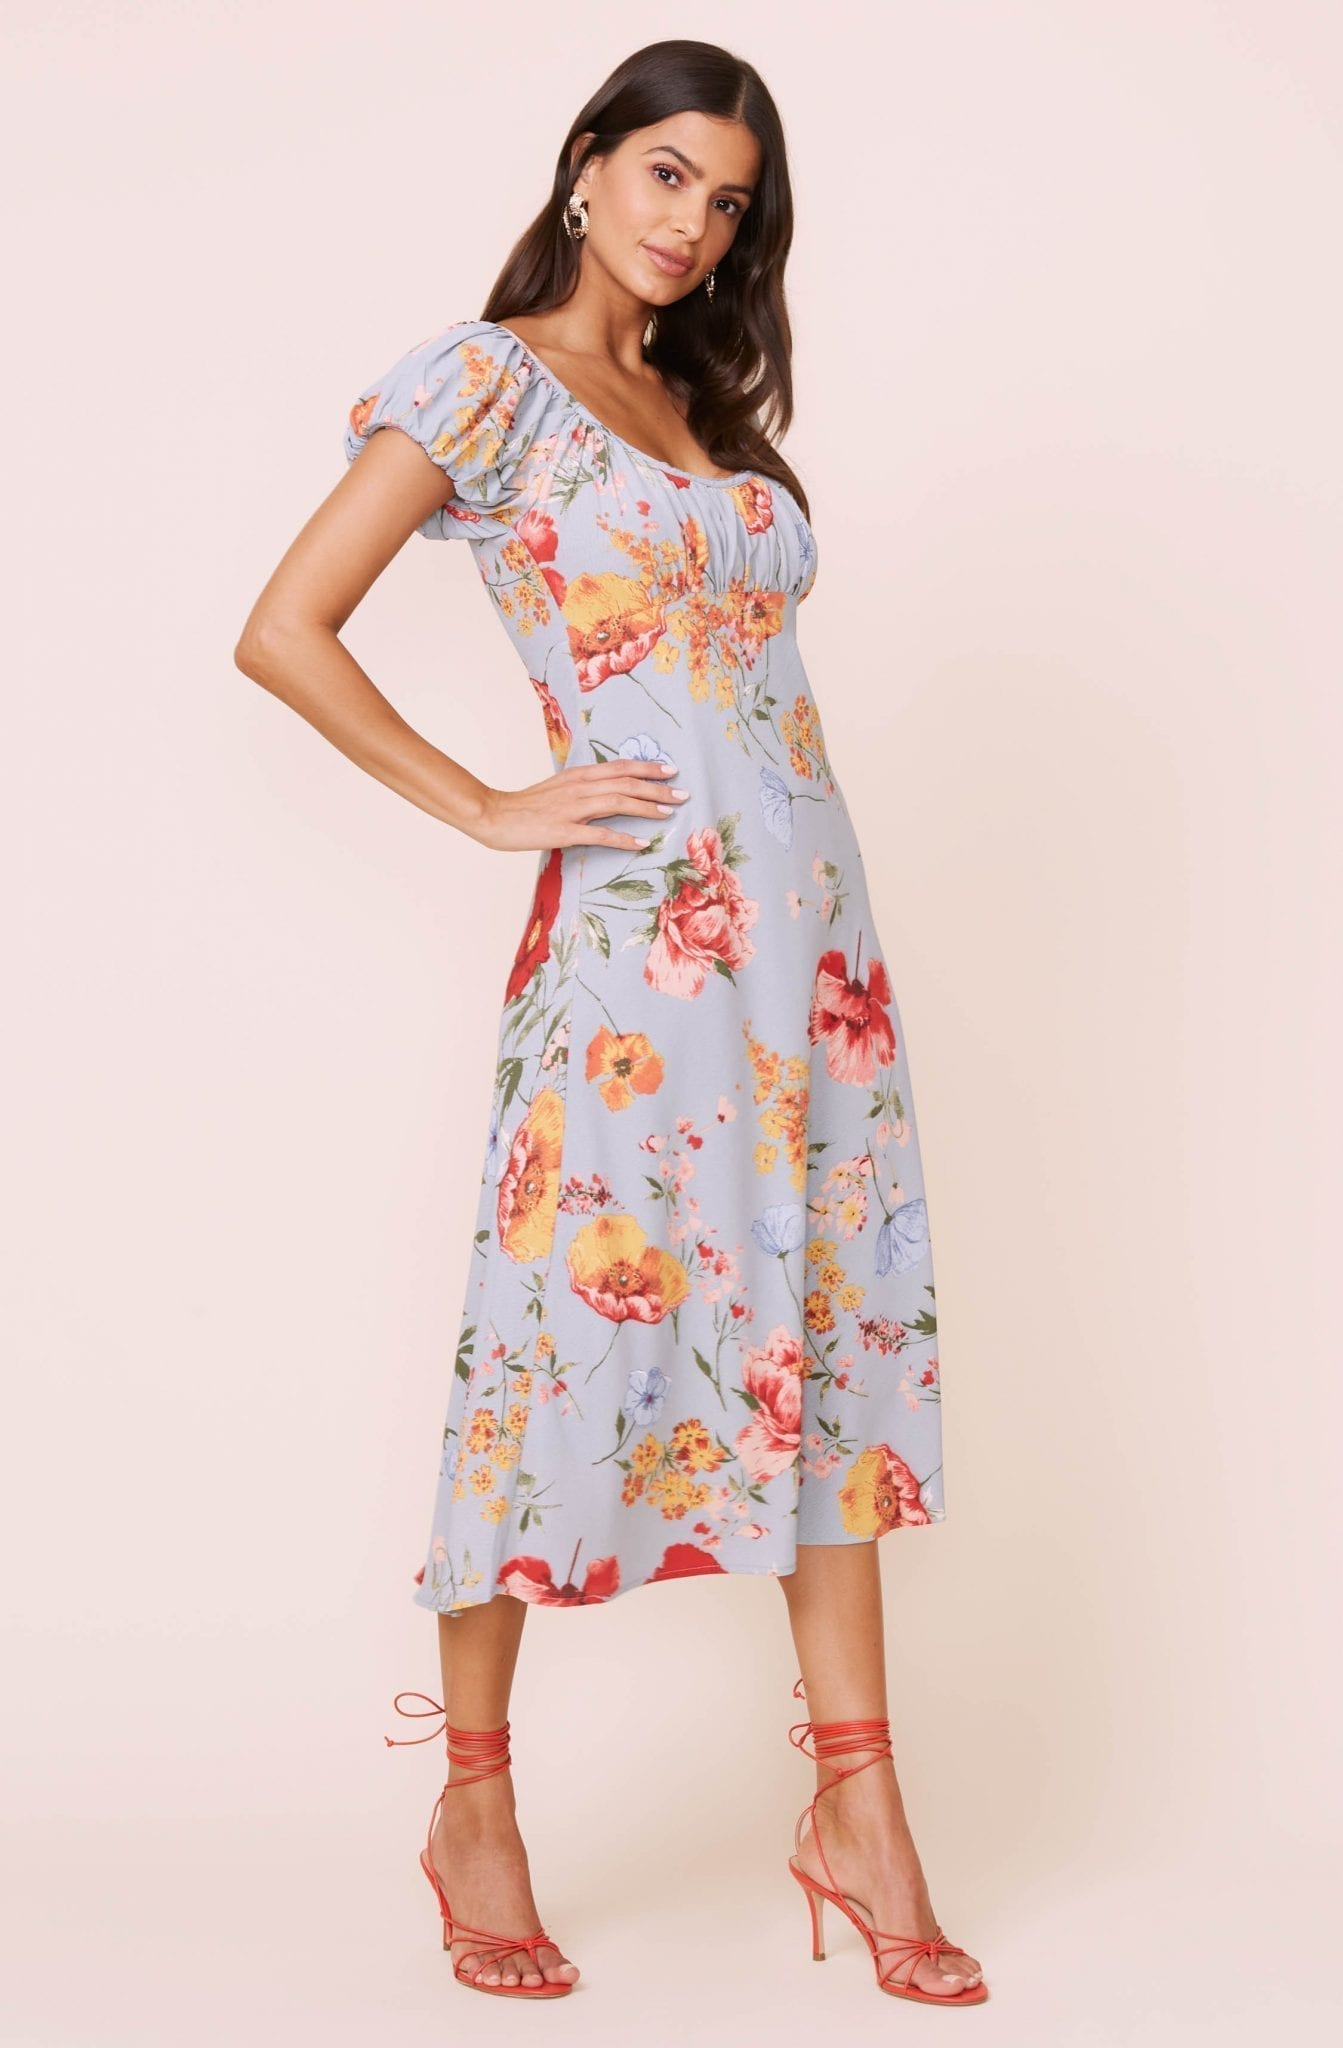 ASTRTHELABEL Donna Floral Midi Dress